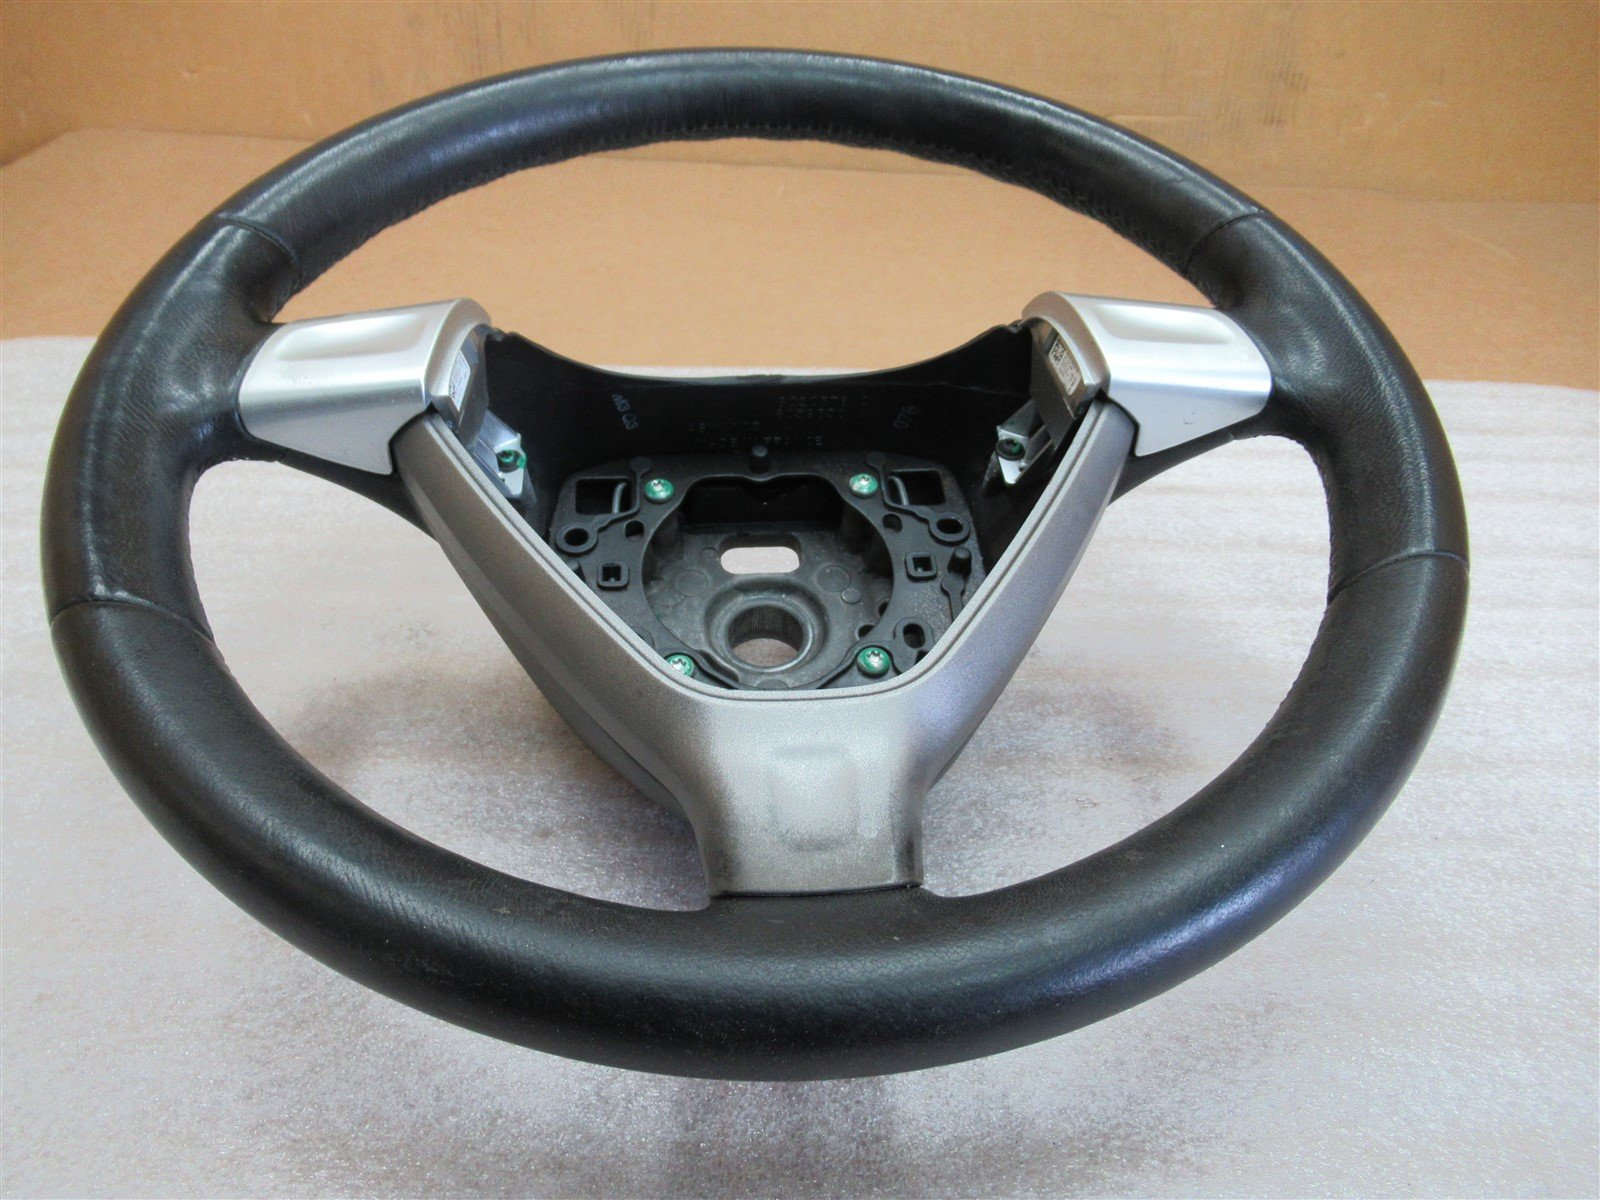 06 Boxster S RWD Porsche 987 3 SPOKE STEERING WHEEL 99734780403 95,517